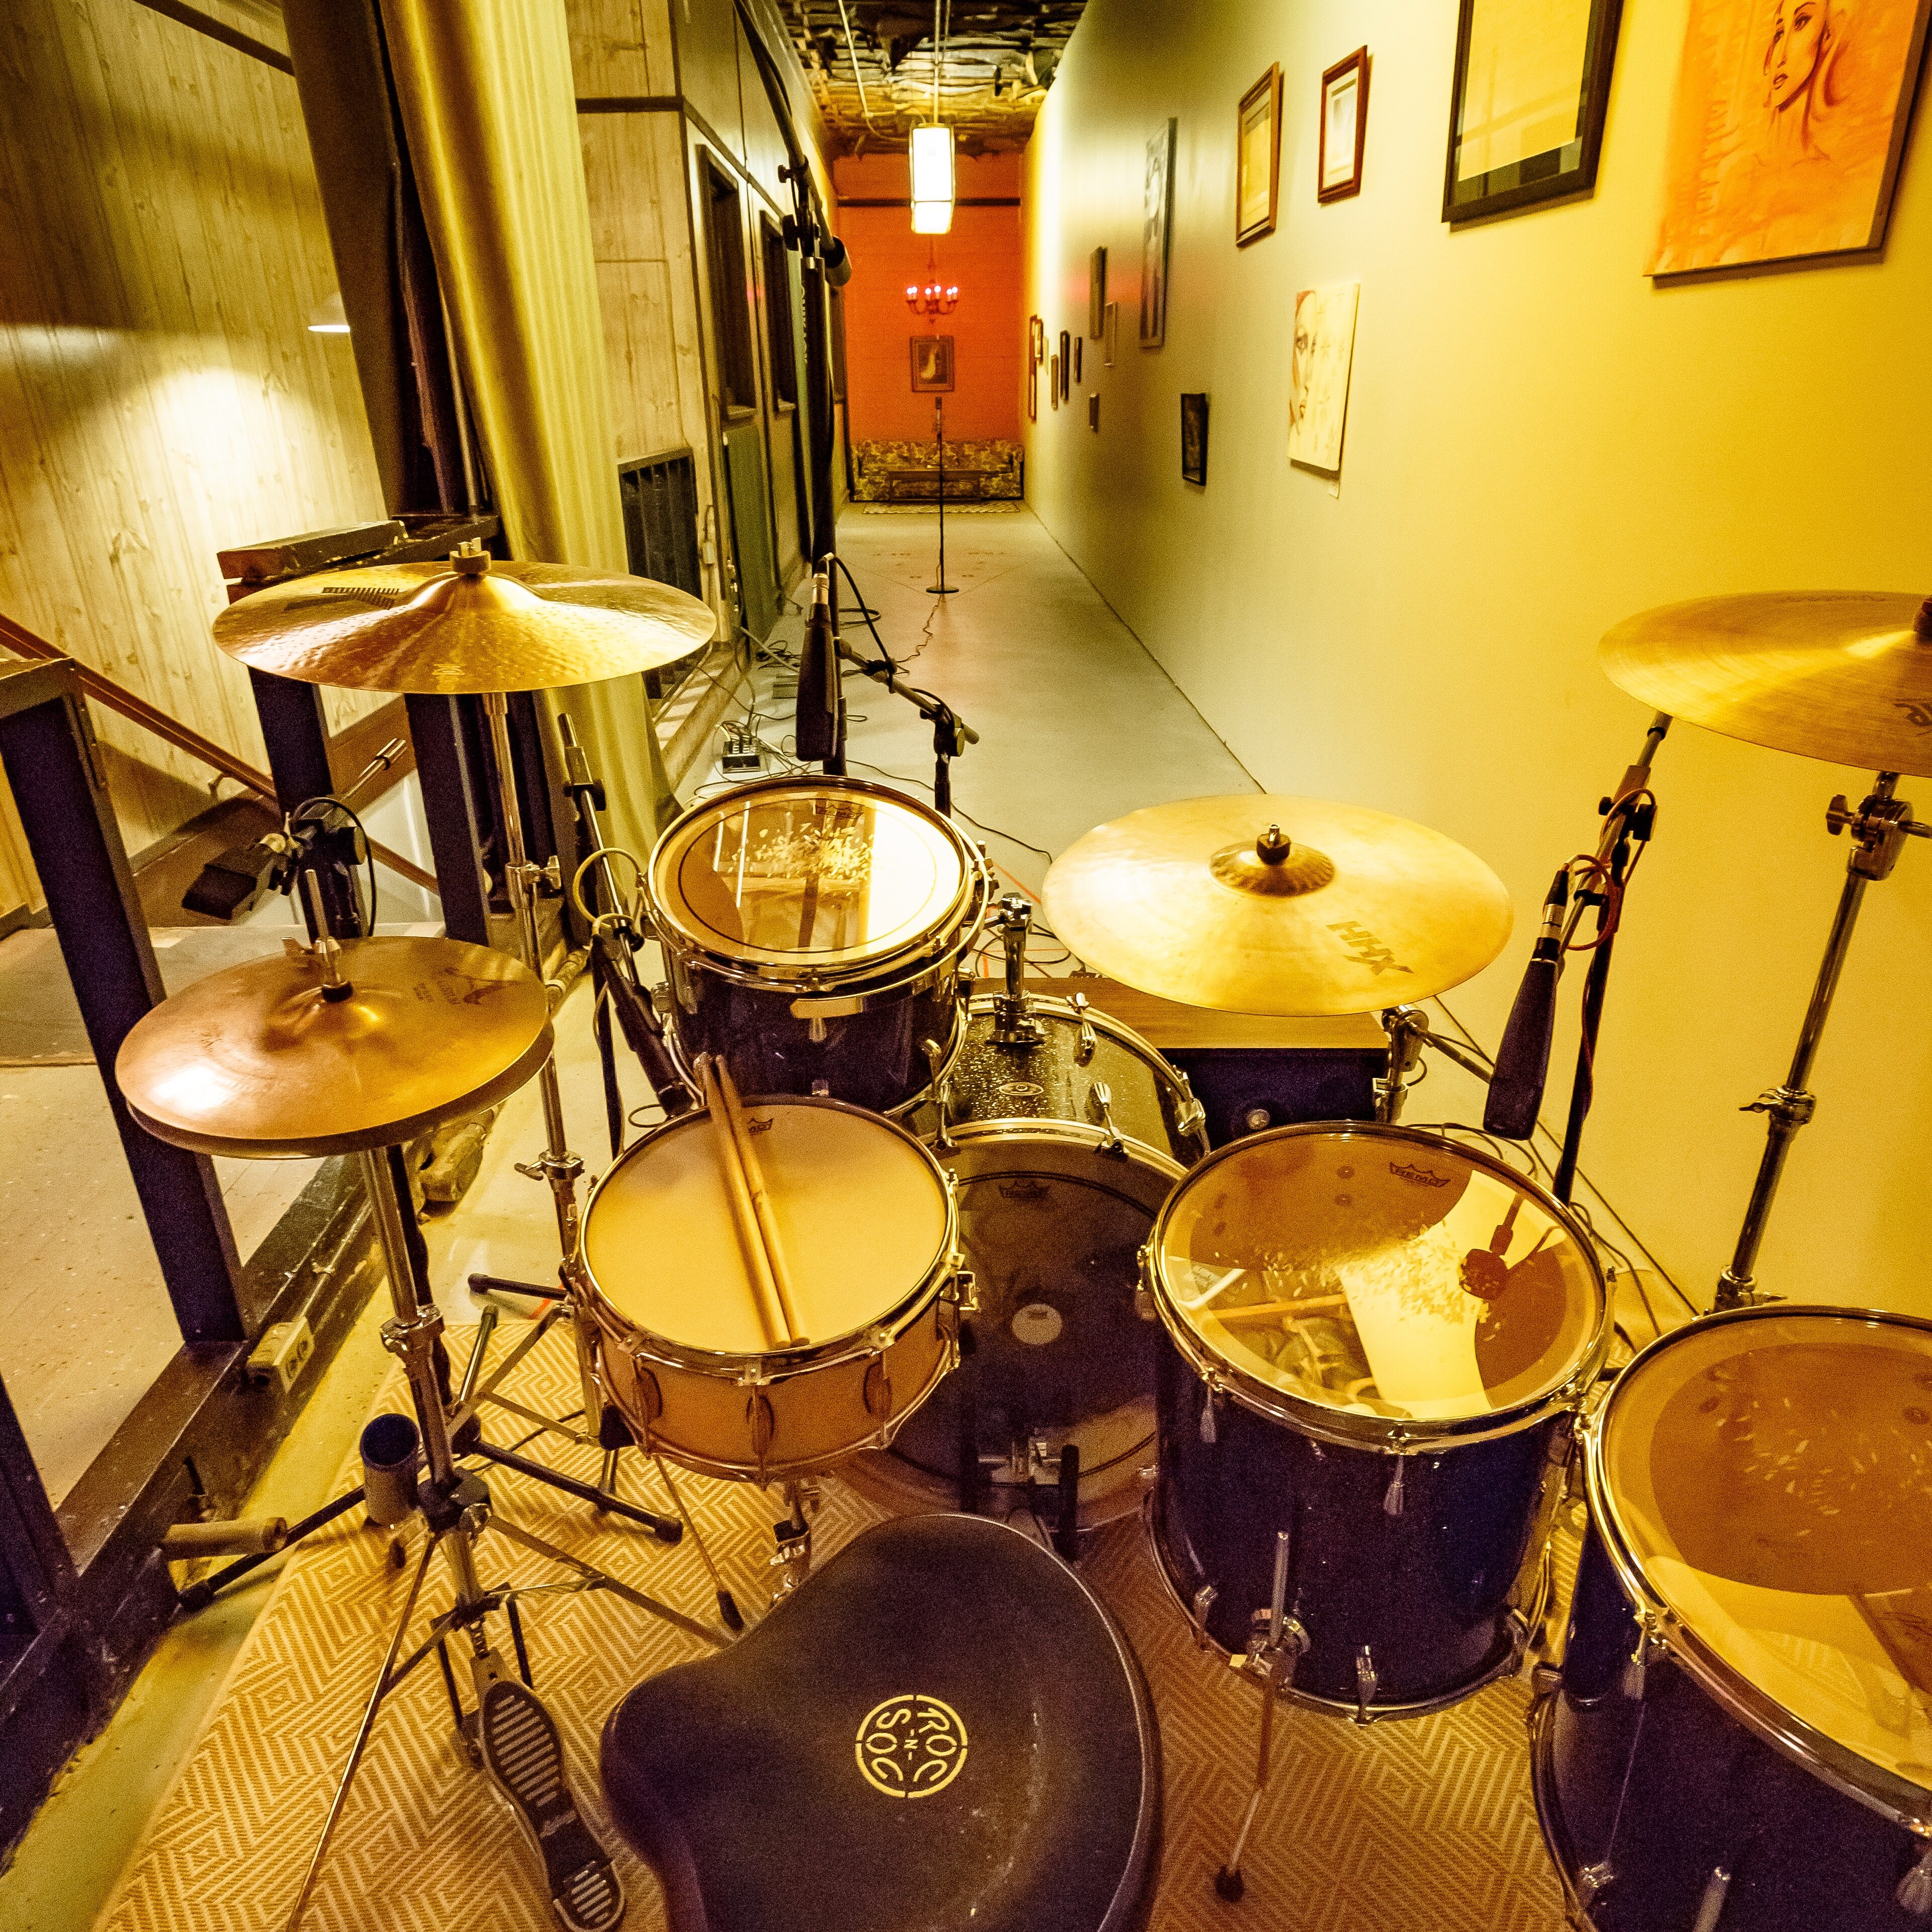 Drums in large hallway at Welcome to 1979 in Nashville